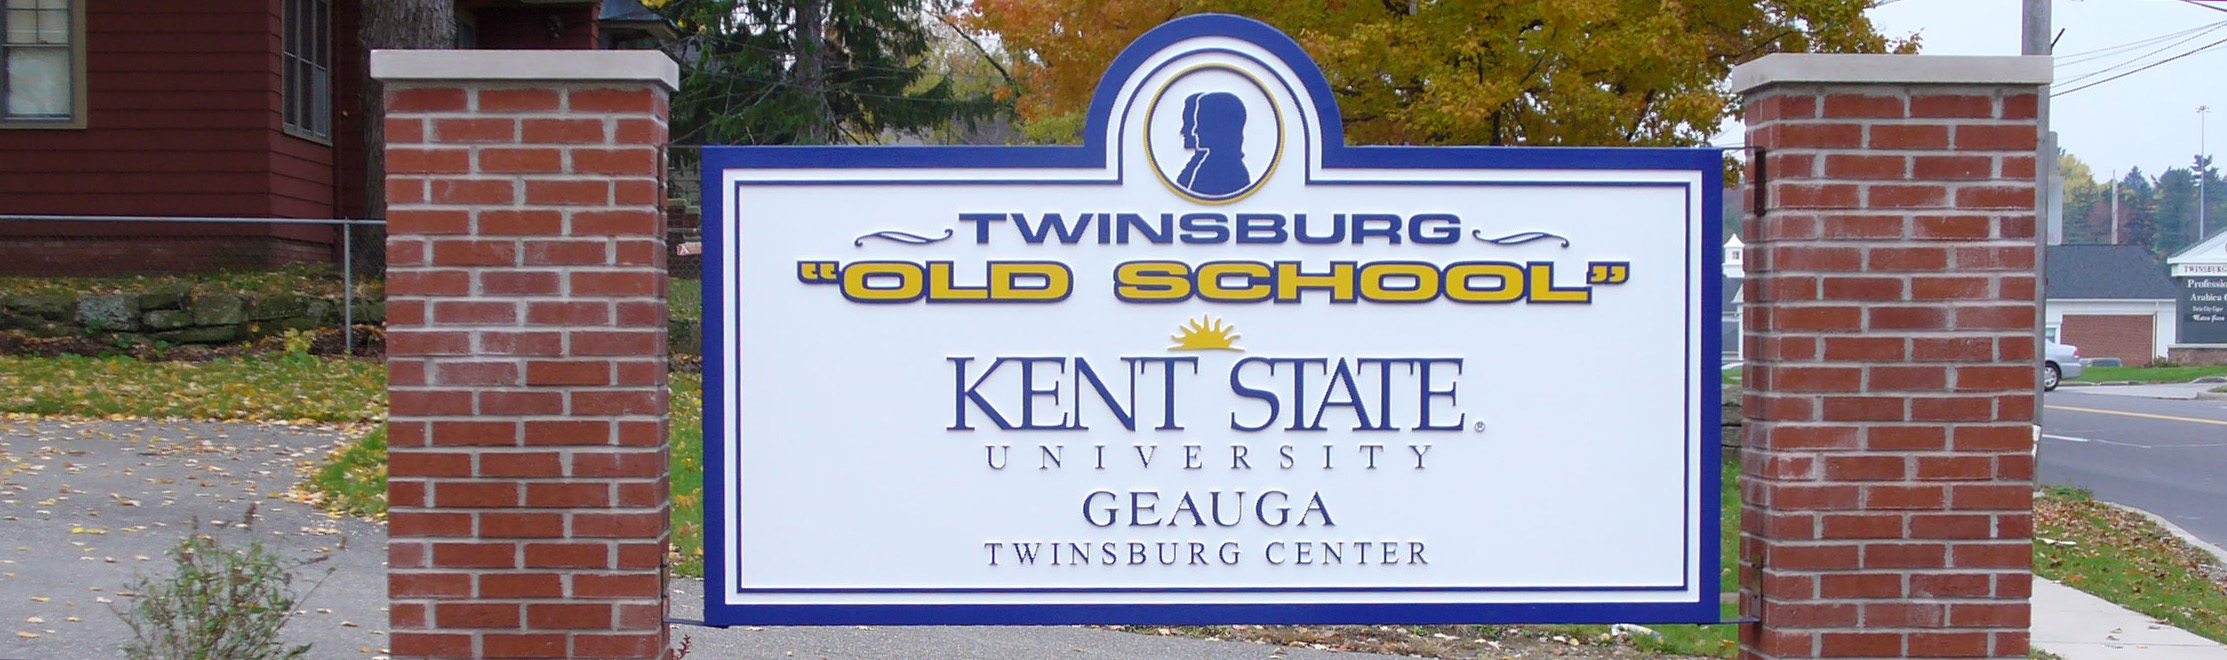 Old Kent State Geauga sign